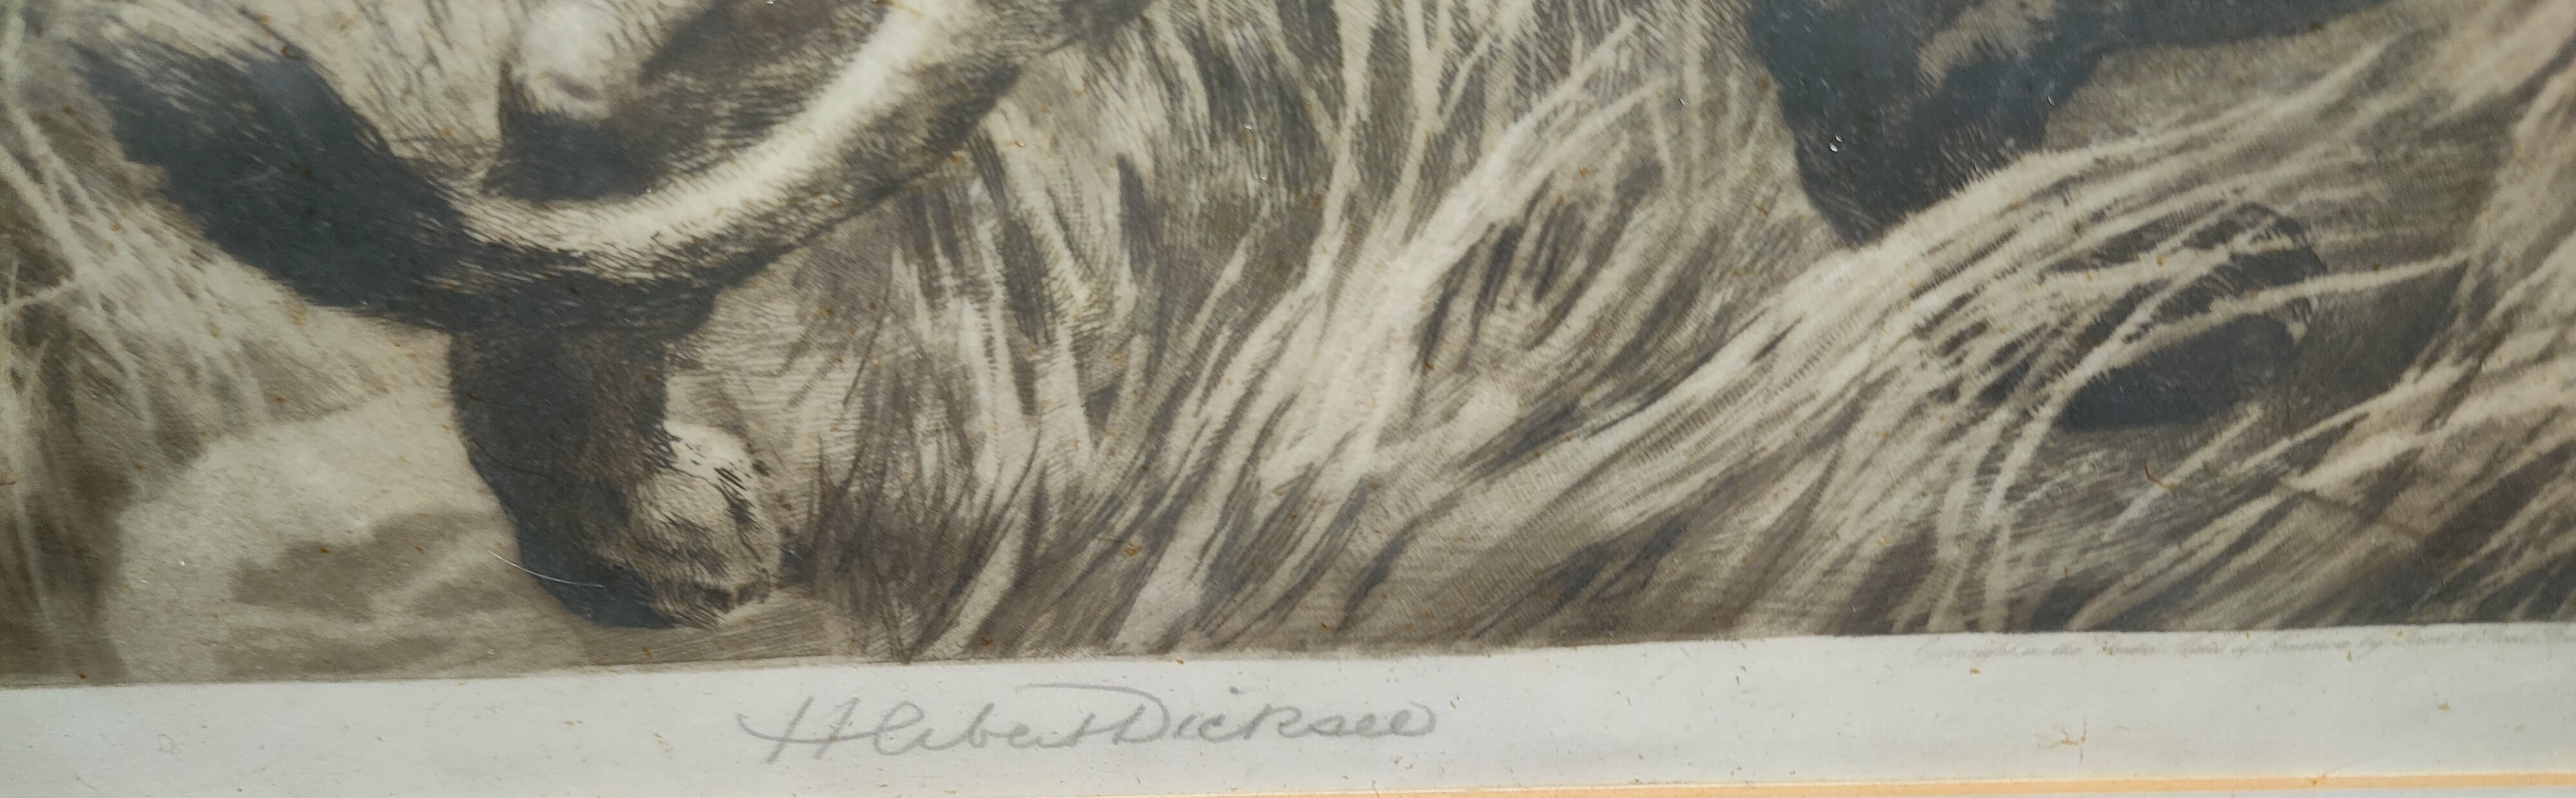 Herbert Thomas Dichsee (1862-1942) Lion & Lioness on a rock outcrop, etching, signed in pencil, - Image 2 of 2